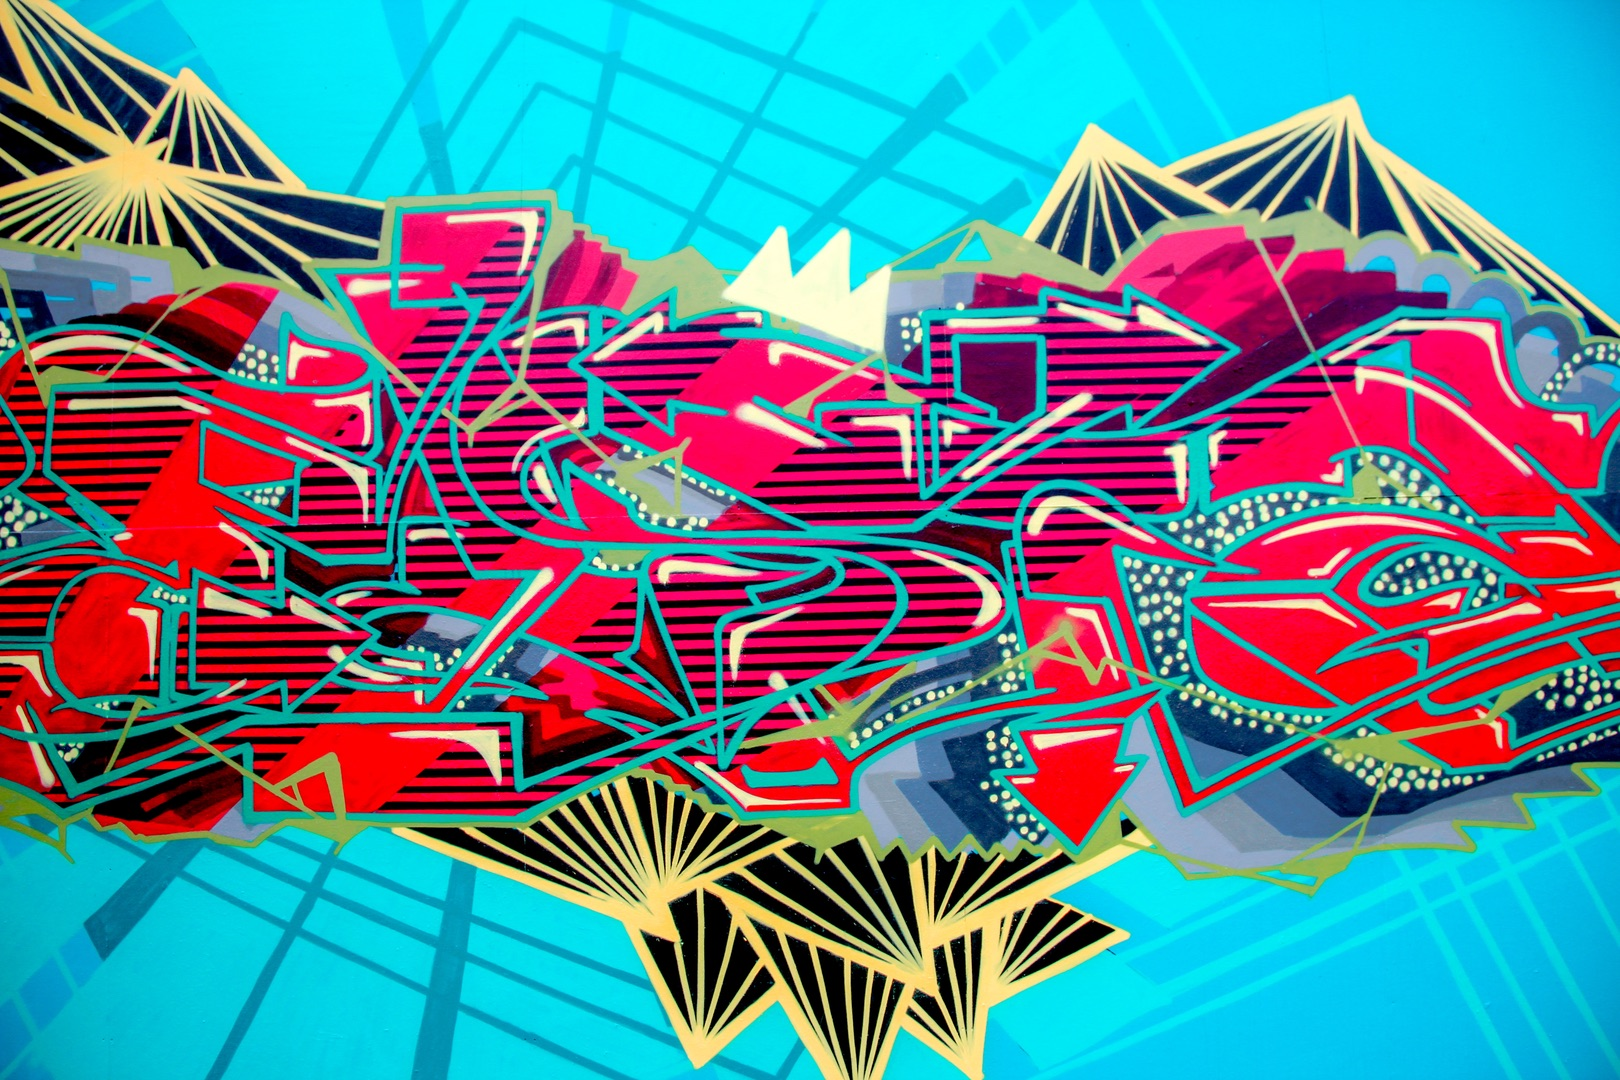 AR Graffiti Experiments with Different Elements of Graffiti